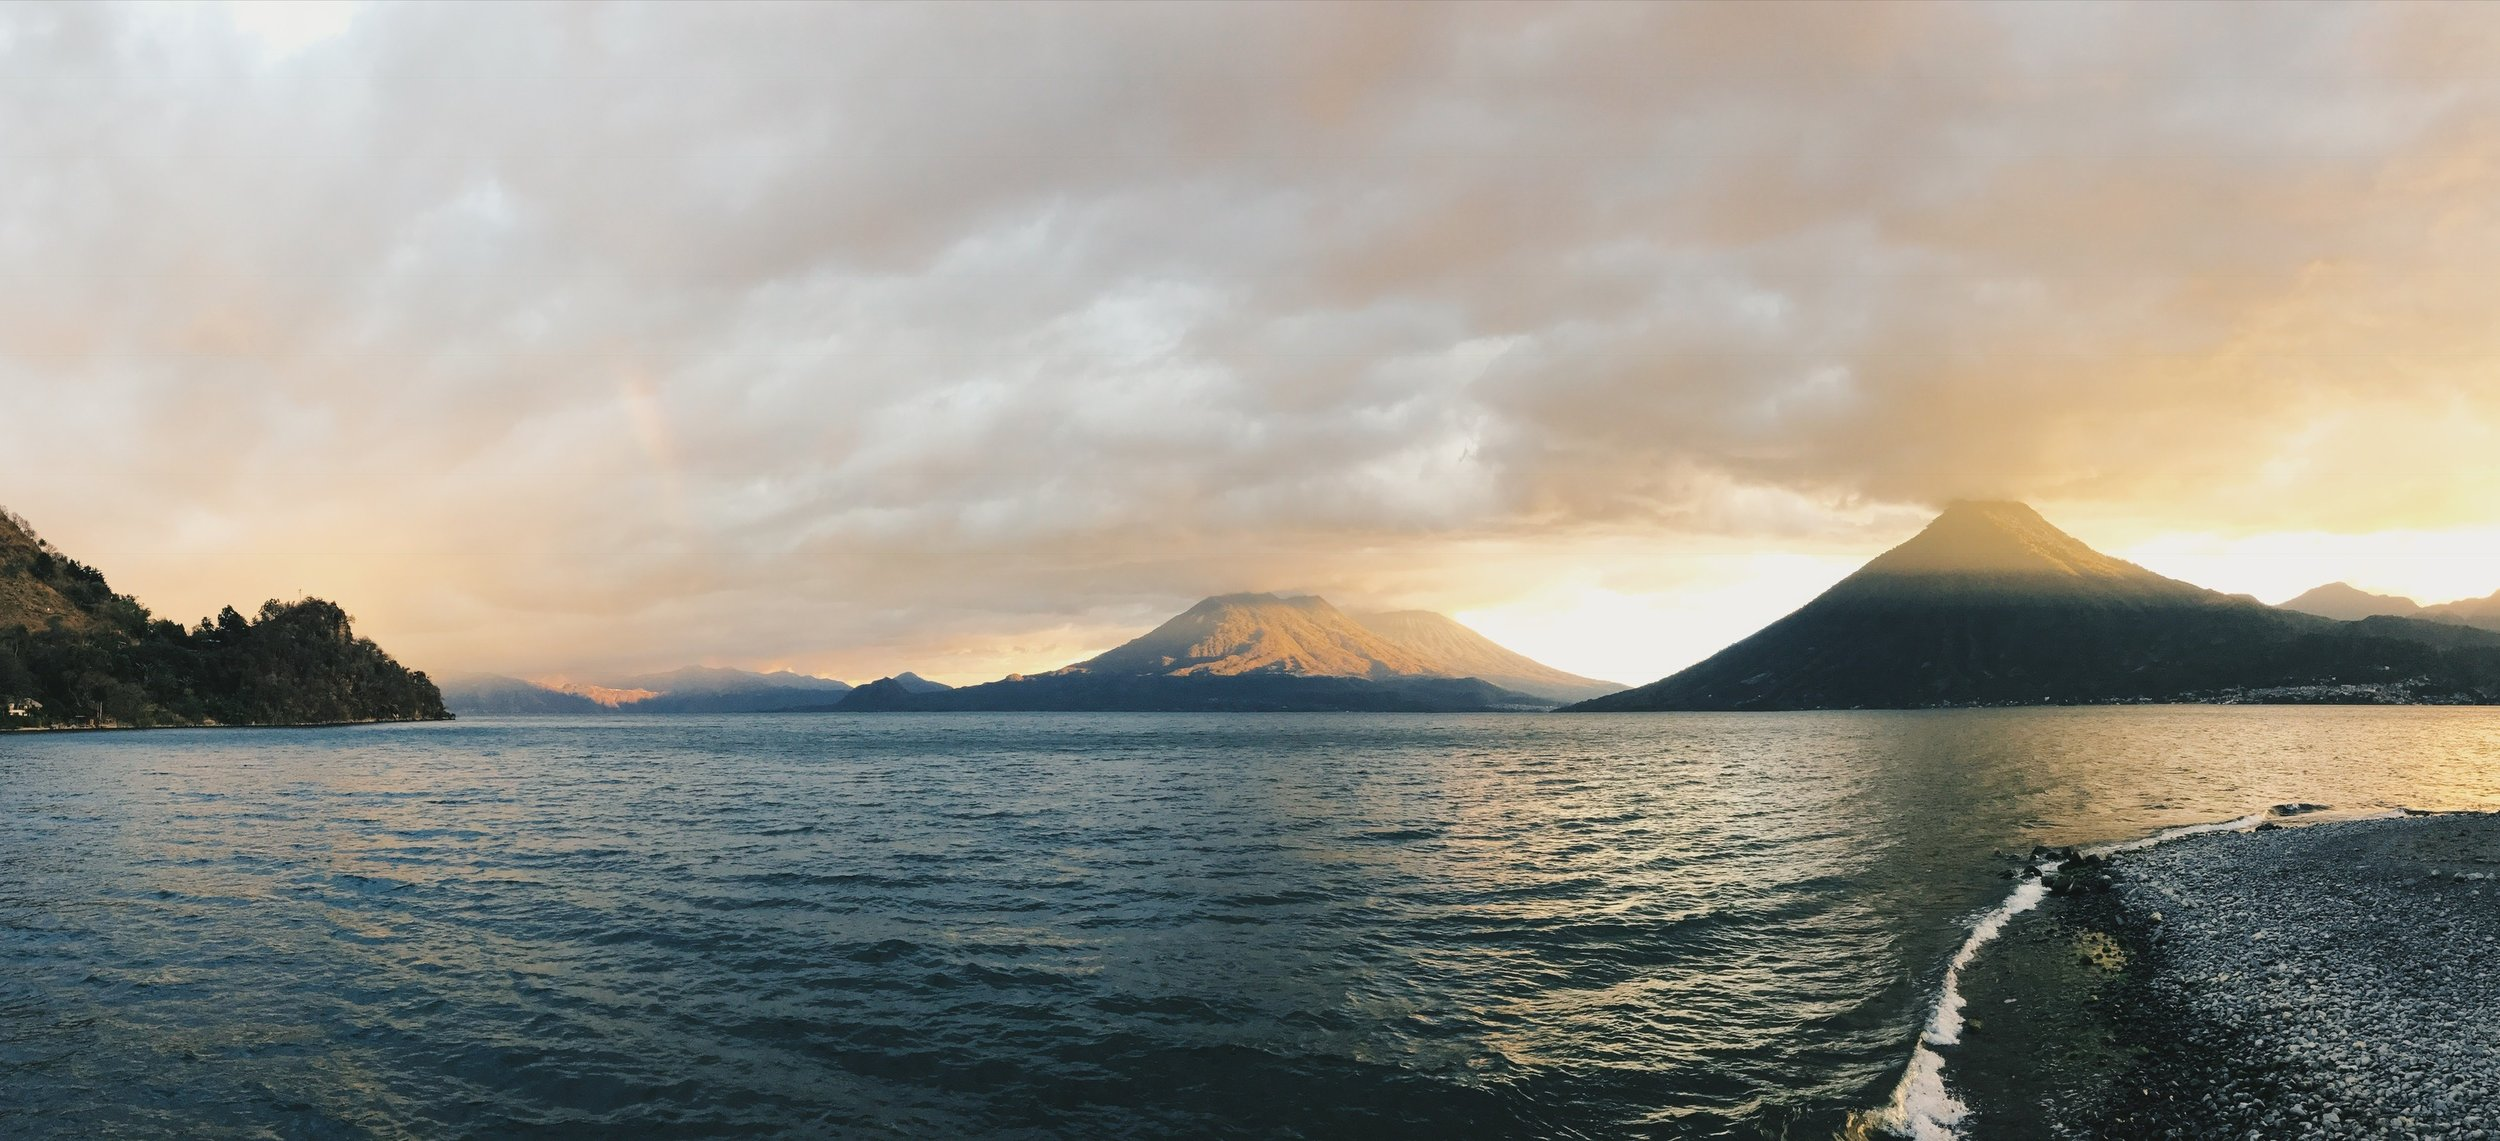 Lake Atitlan and her volcanoes from the dock at Hostel del Lago